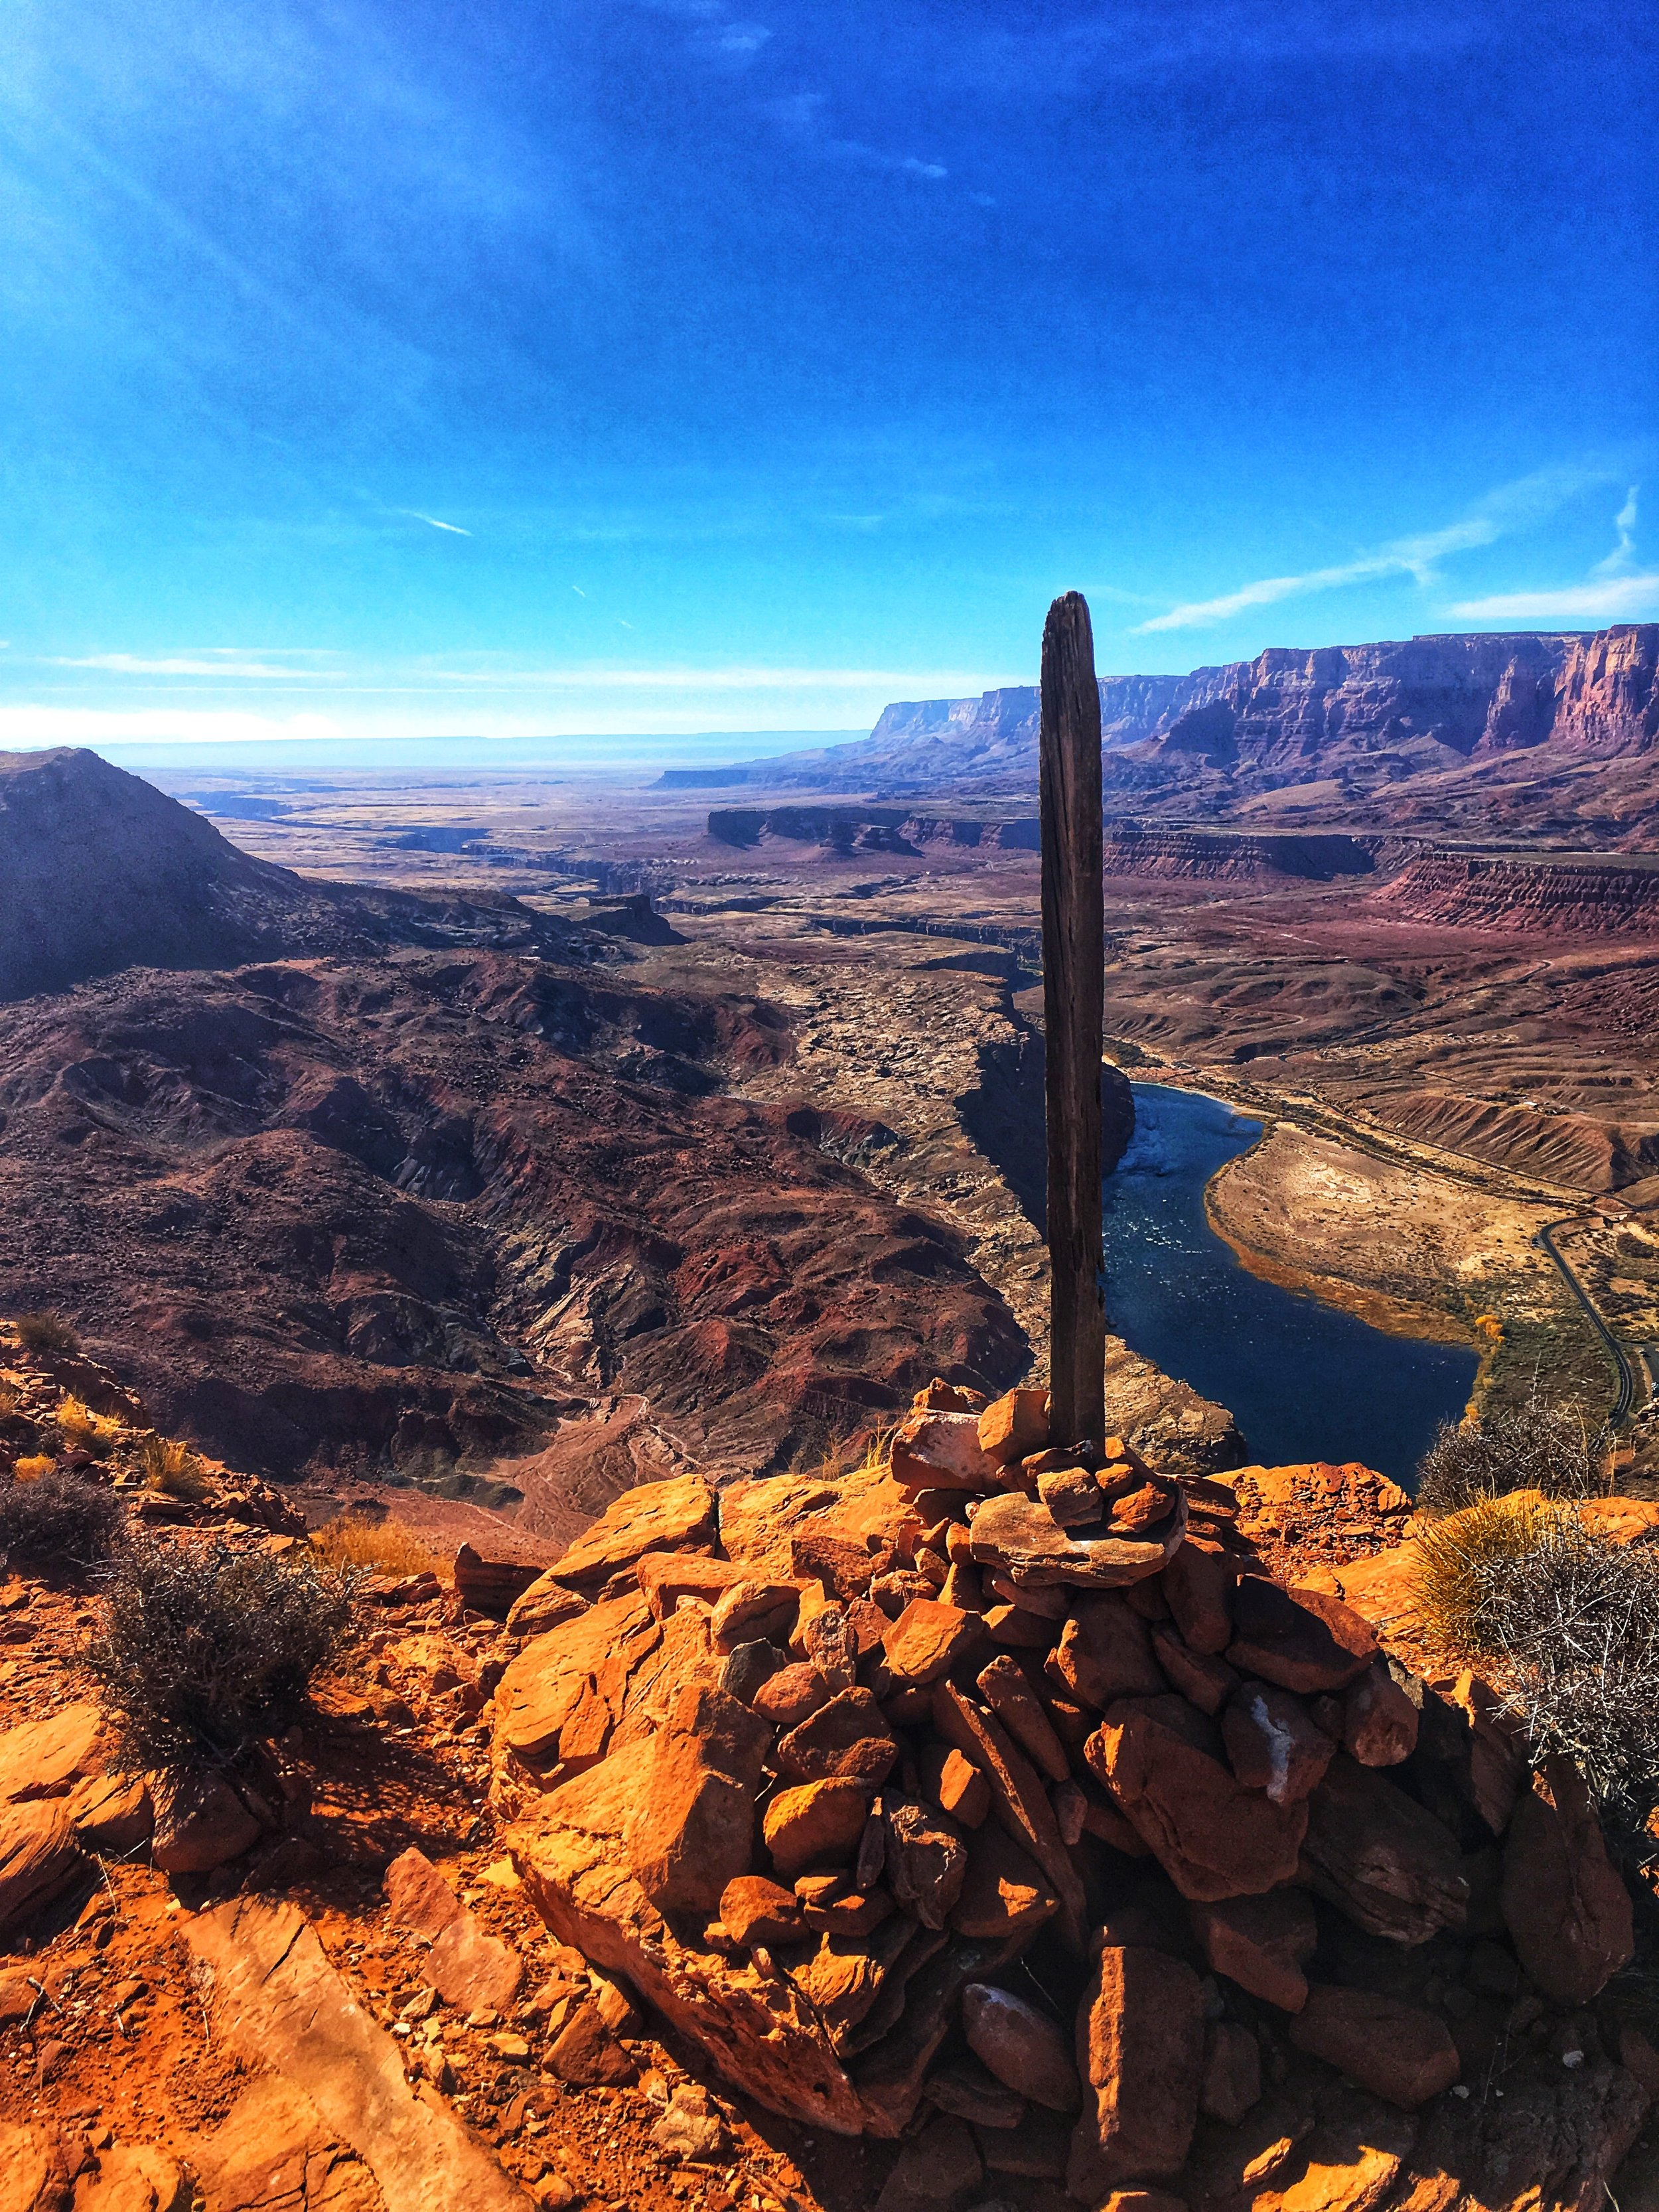 A view of the Colorado River from Spencer Trail, Lee's Ferry, Arizona